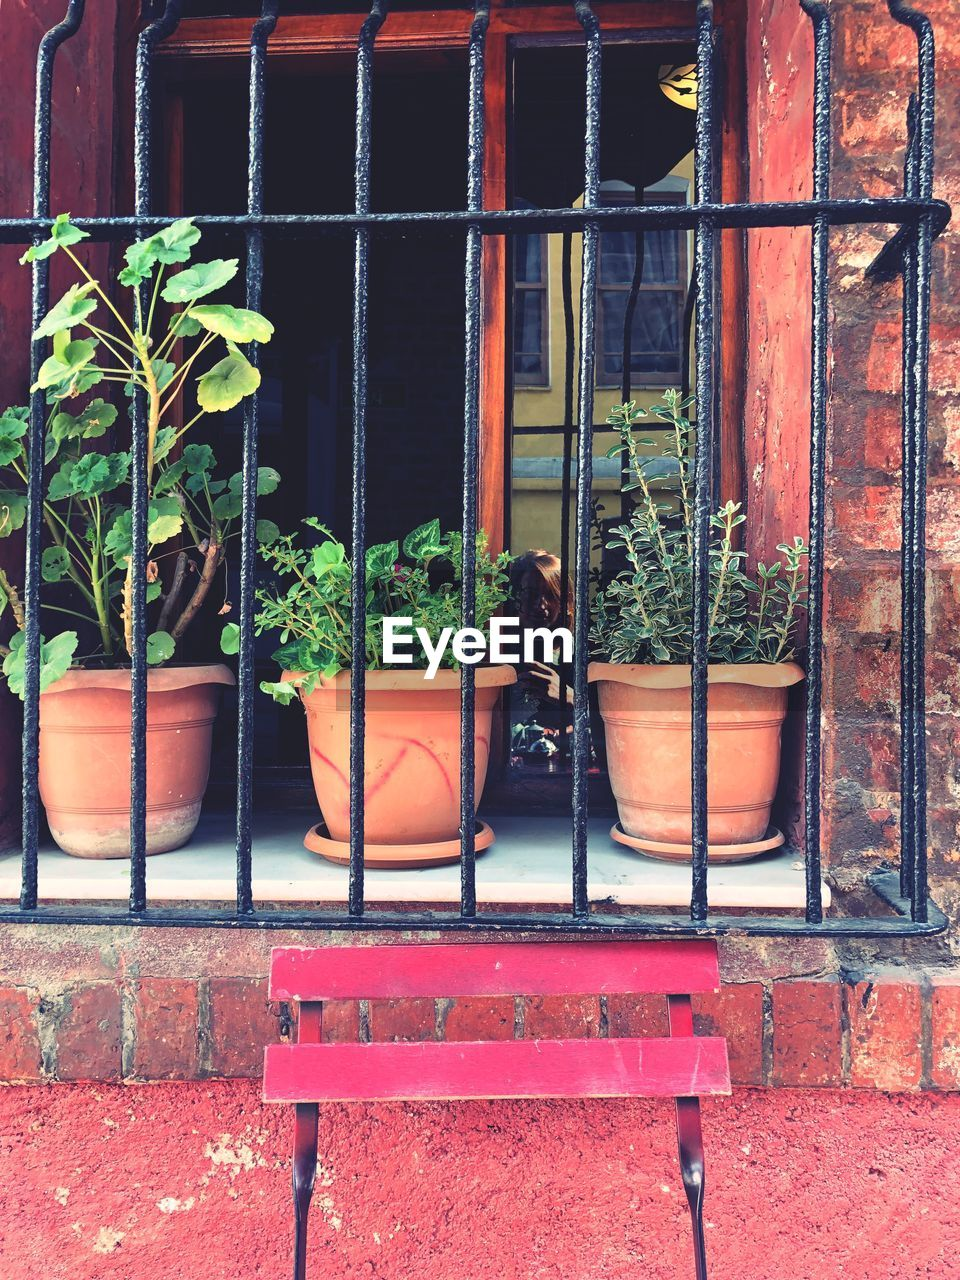 architecture, built structure, plant, window, building exterior, day, potted plant, building, growth, nature, outdoors, real people, wall - building feature, glass - material, wall, plant part, leaf, door, red, brick, flower pot